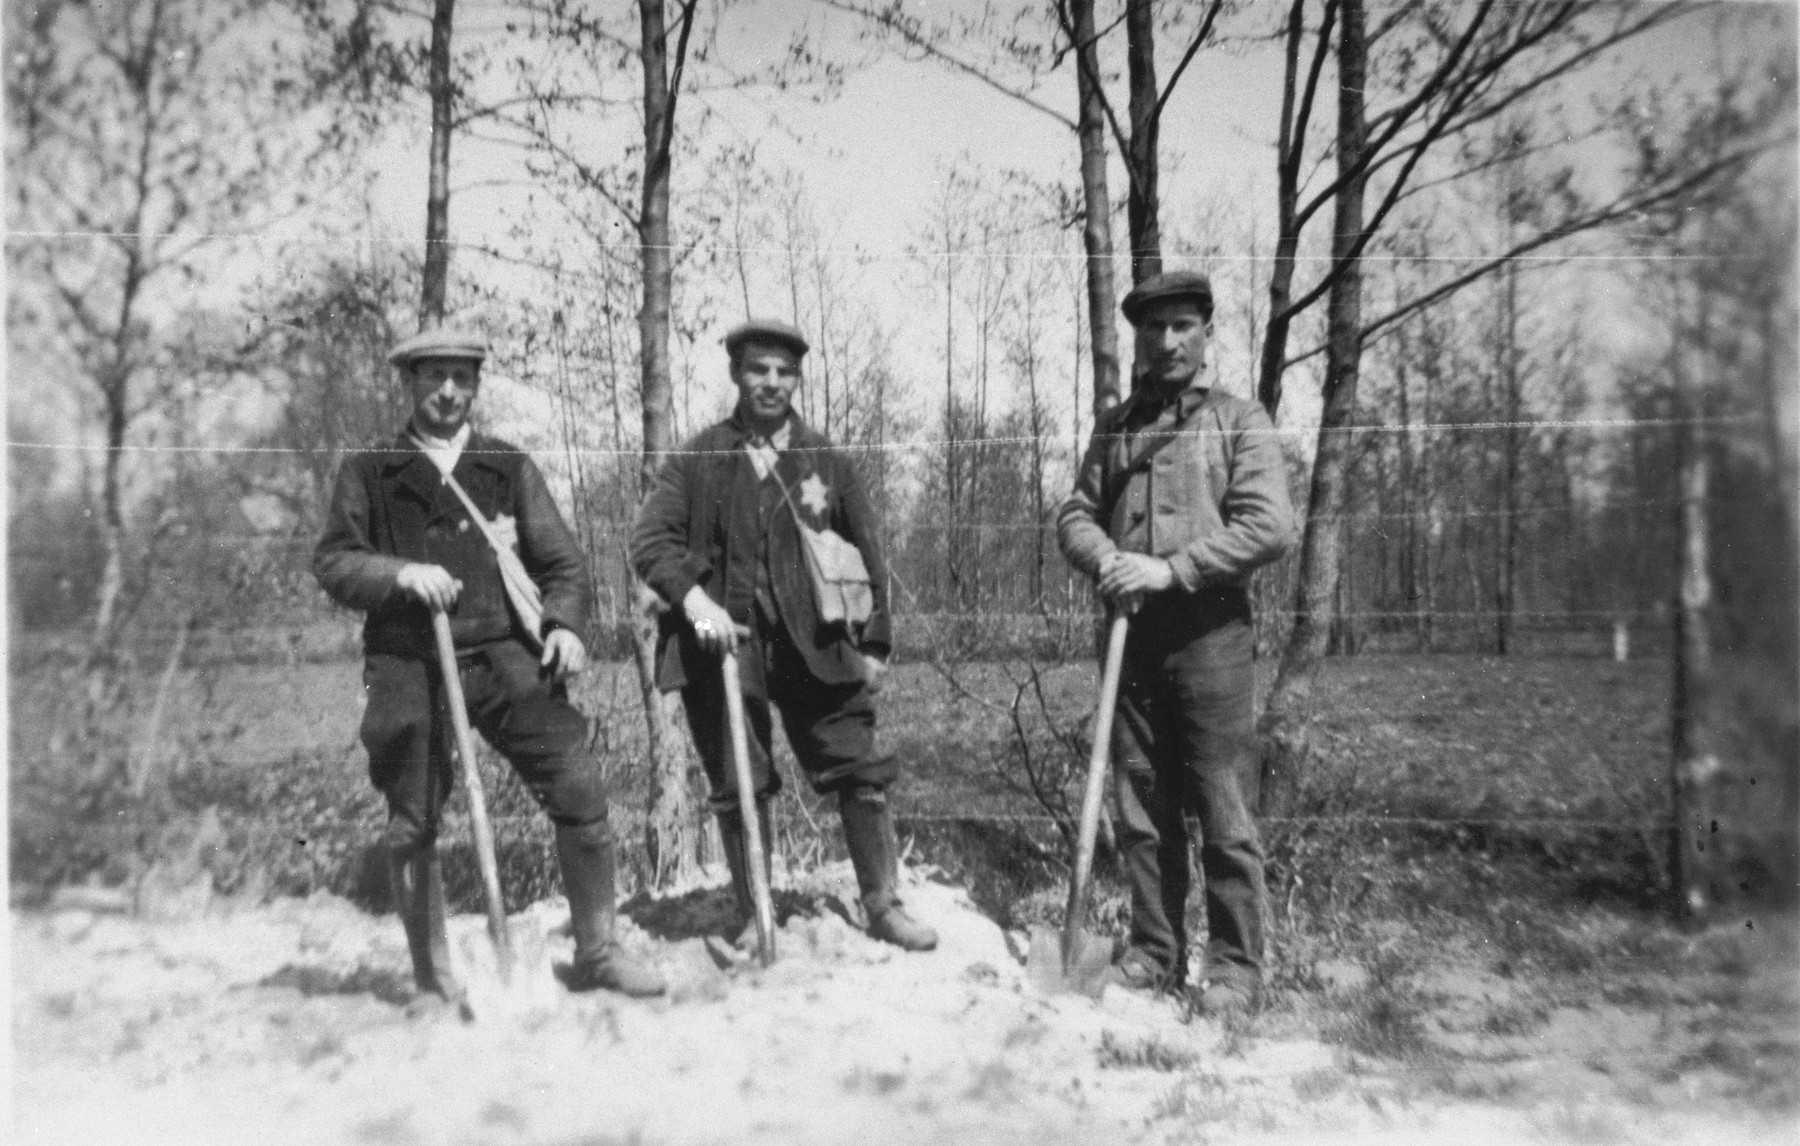 Prisoners wearing Jewish stars from the Staphorst-Rouveen labor camp remodel graves for a Christian church.  Pictured from left to right are M. Cohen, L. Waterman and Coenraad Rood.